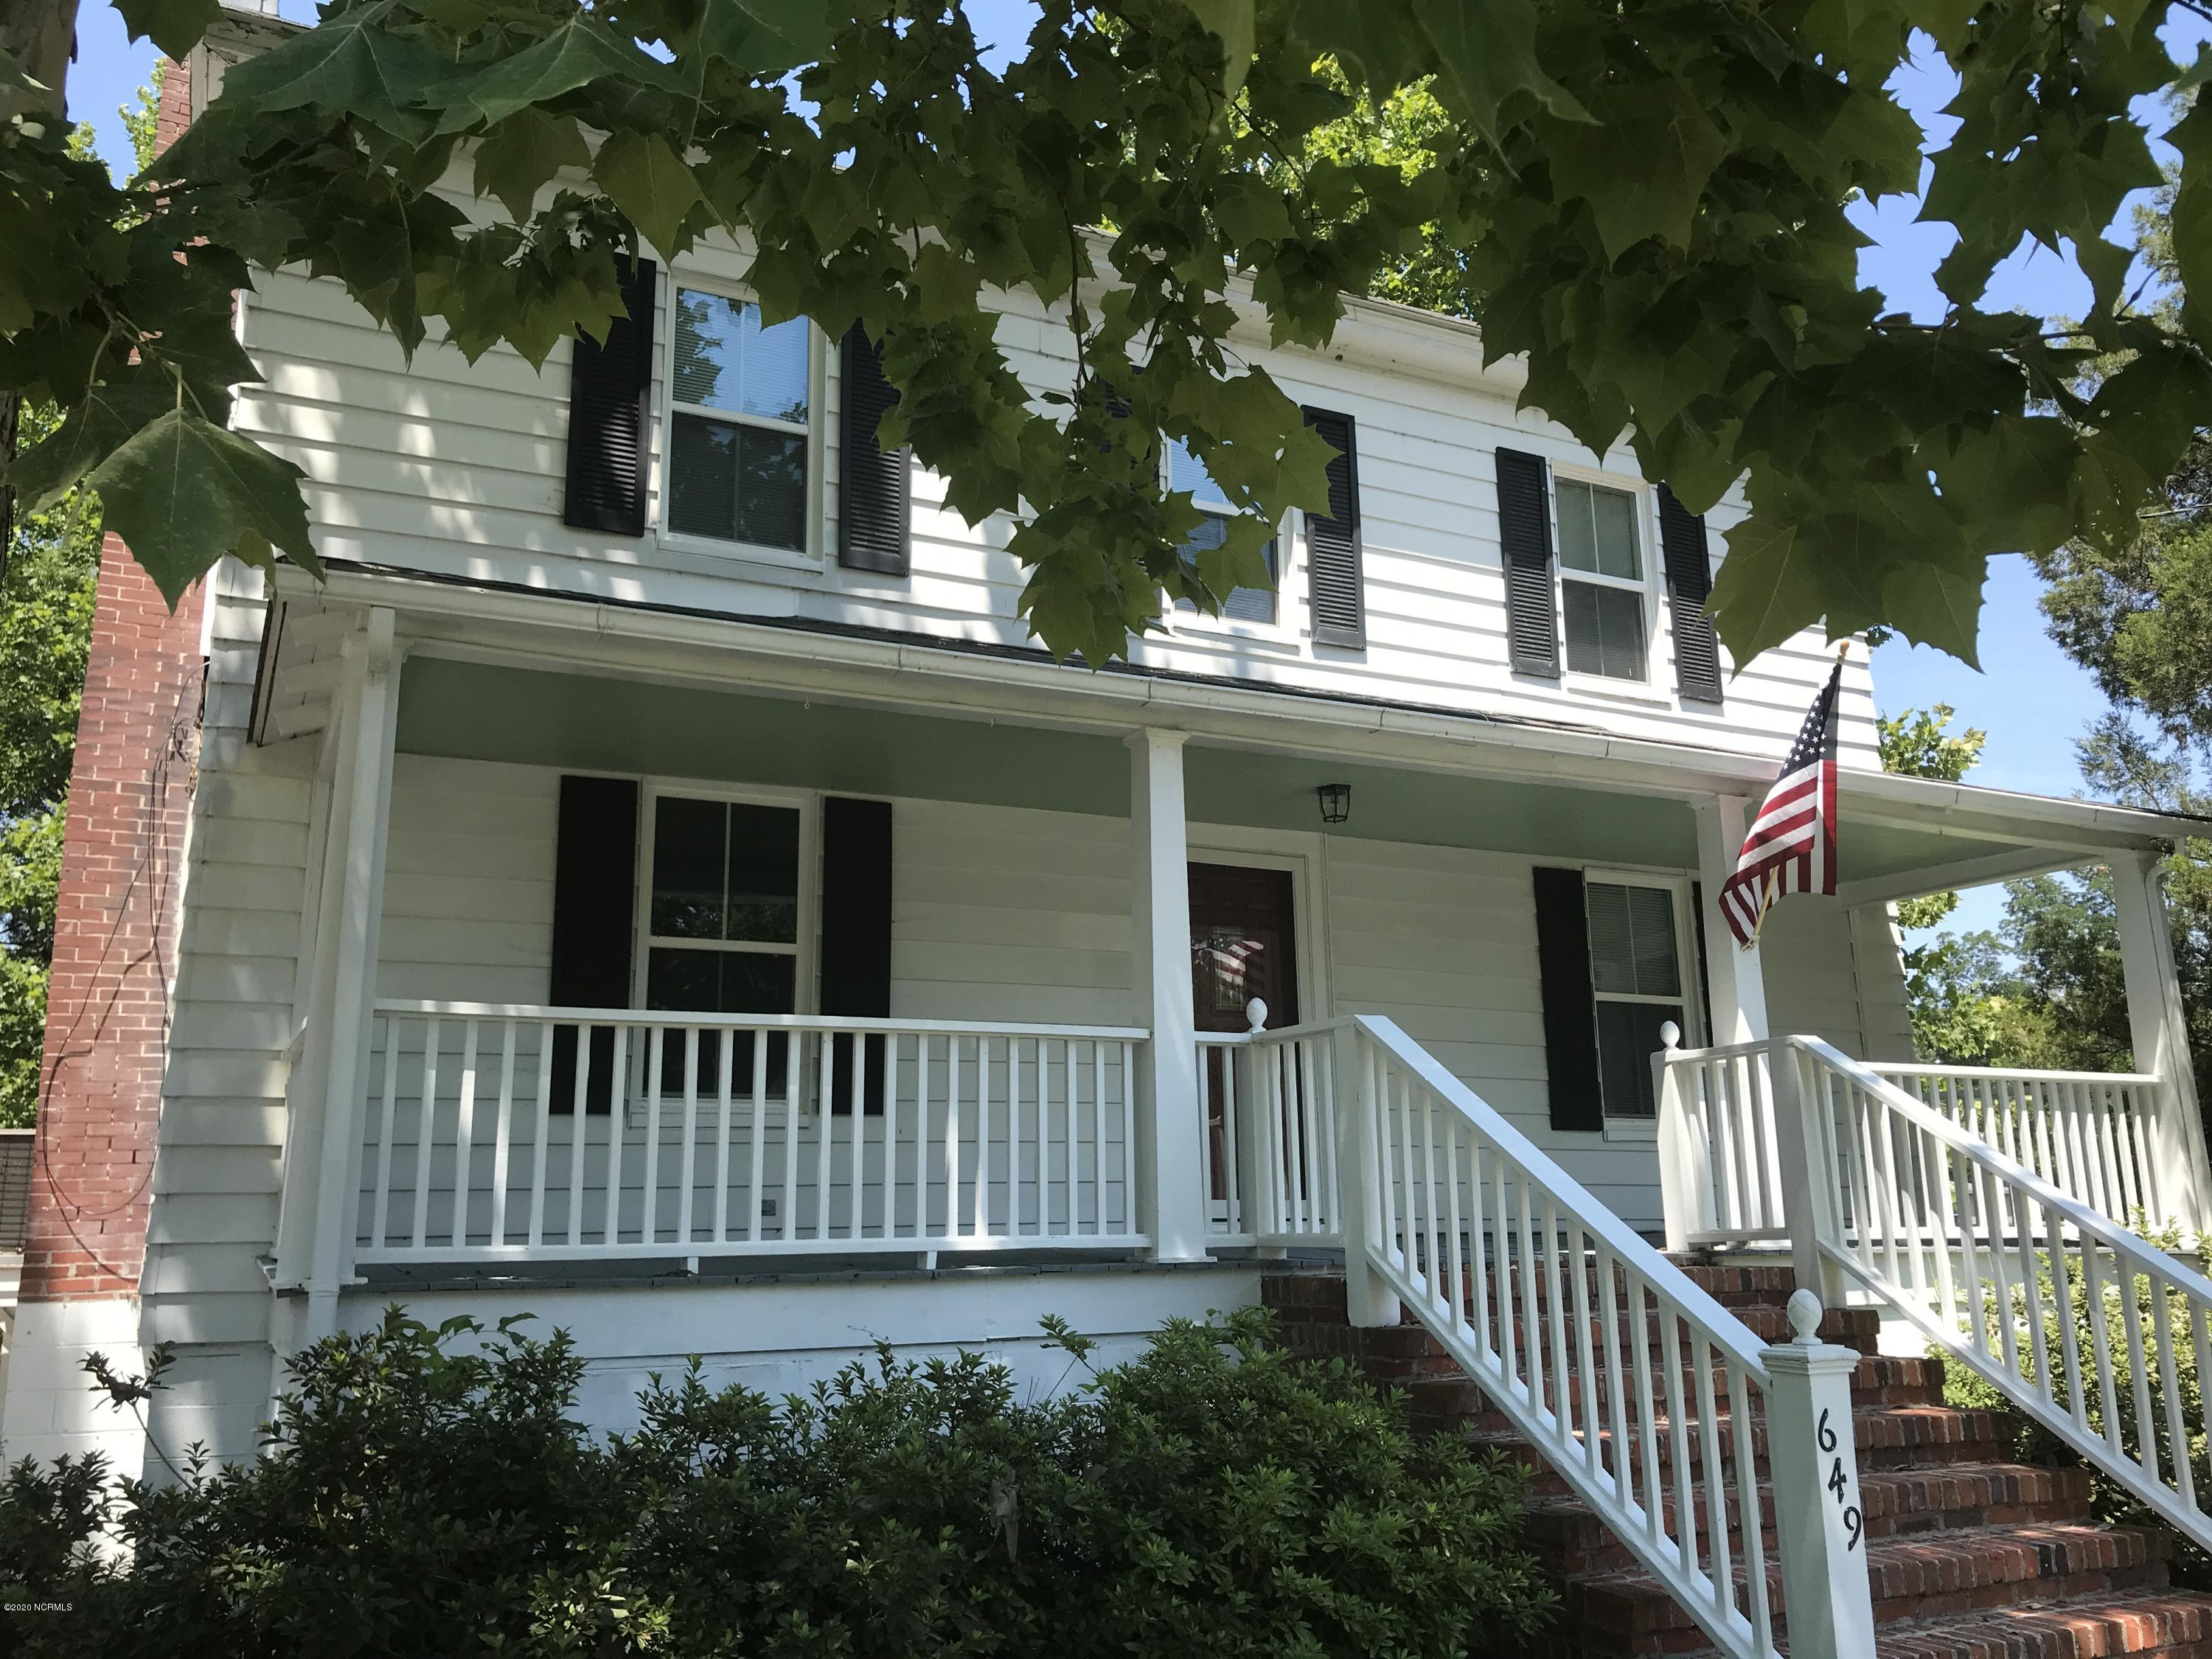 649 Main Street, Belhaven, North Carolina 27810, 3 Bedrooms Bedrooms, 7 Rooms Rooms,1 BathroomBathrooms,Single family residence,For sale,Main,100231030